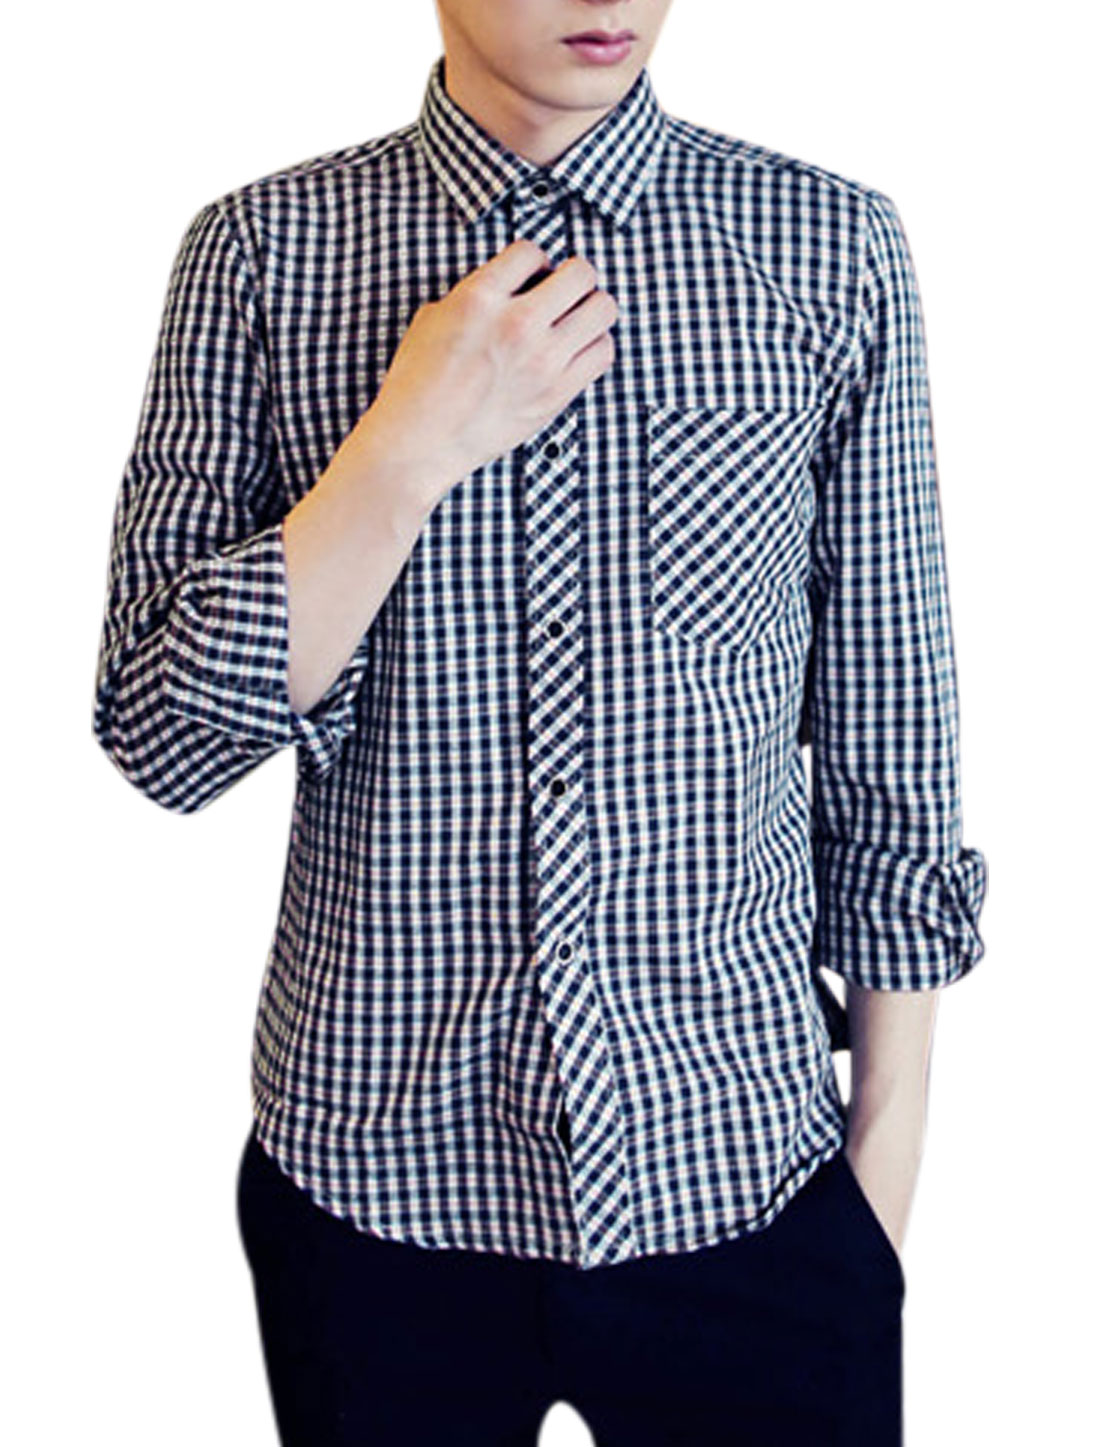 All Over Plaids Print One Patch Pocket Casual Shirt for Men Orange Navy Blue M